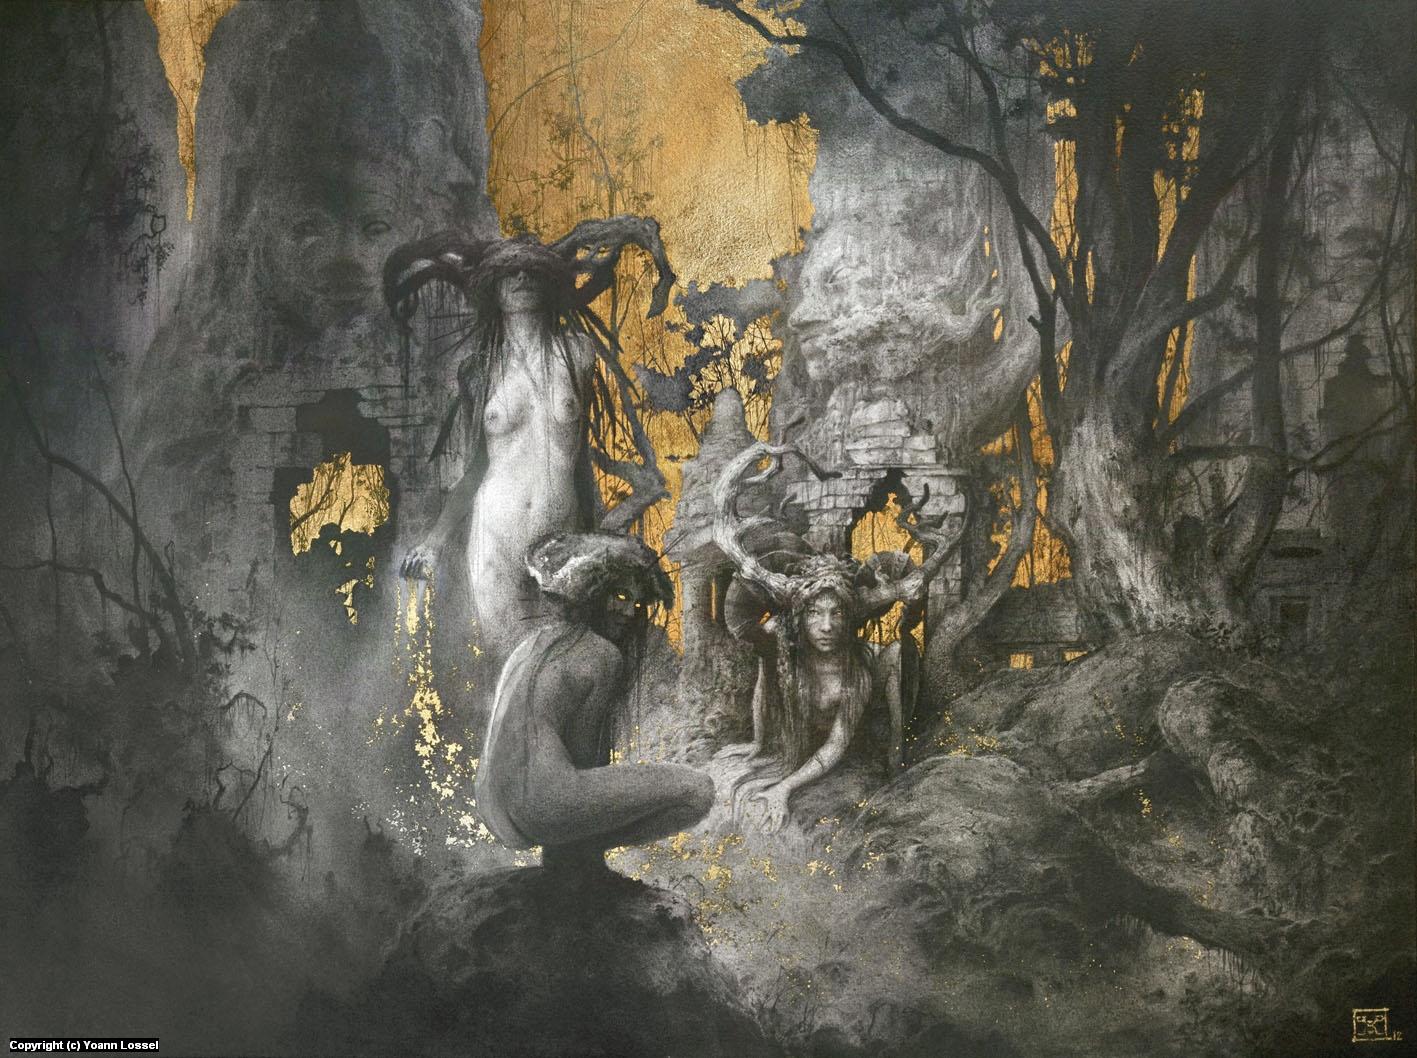 The Golden Age Artwork by Yoann Lossel